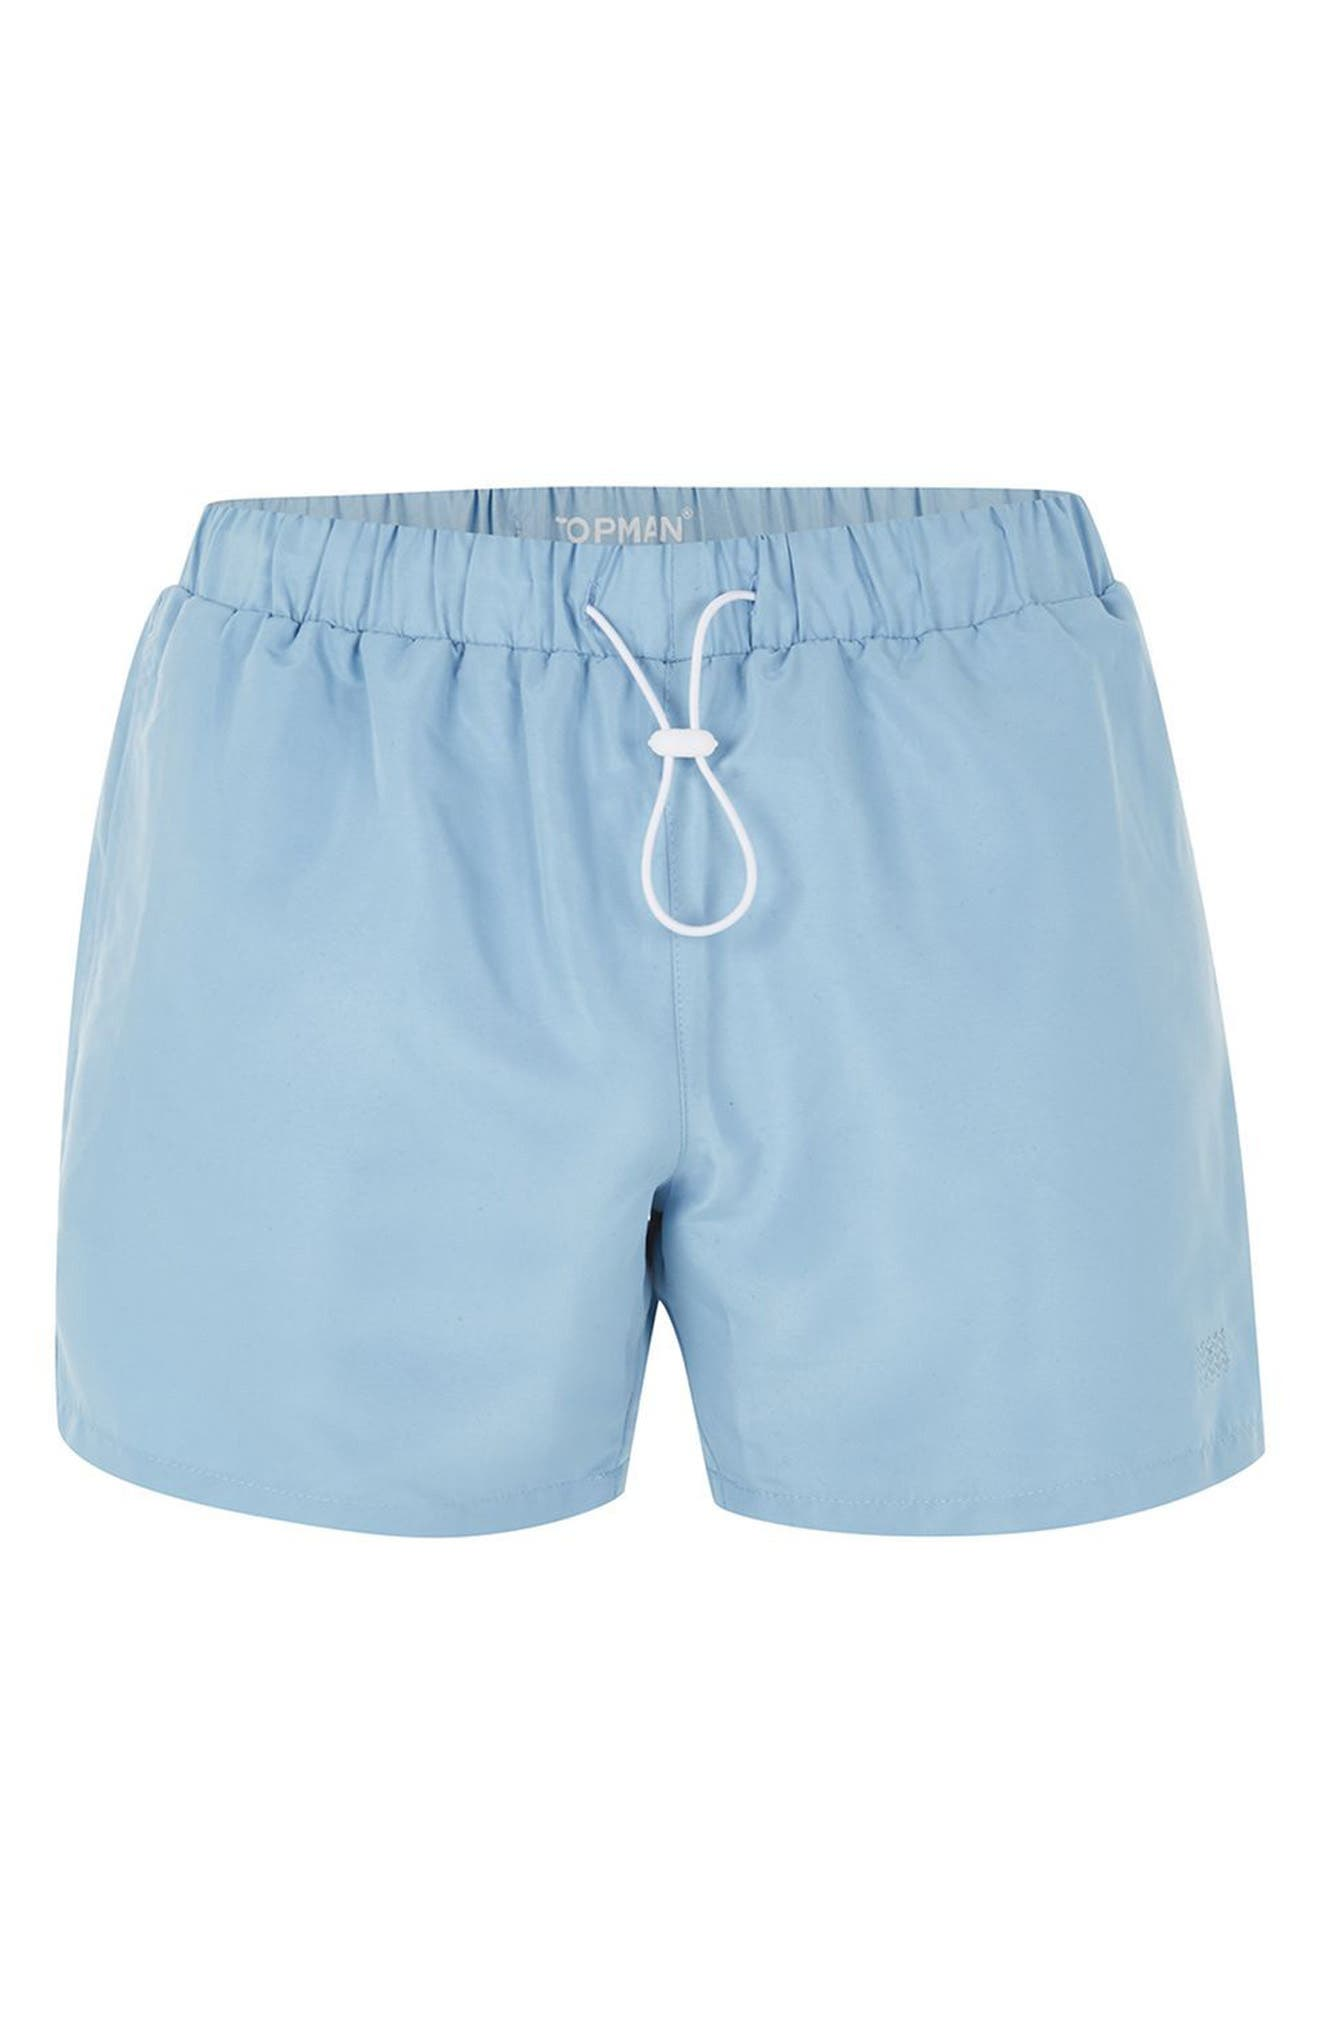 Neptune Swim Trunks,                             Alternate thumbnail 4, color,                             Mid Blue